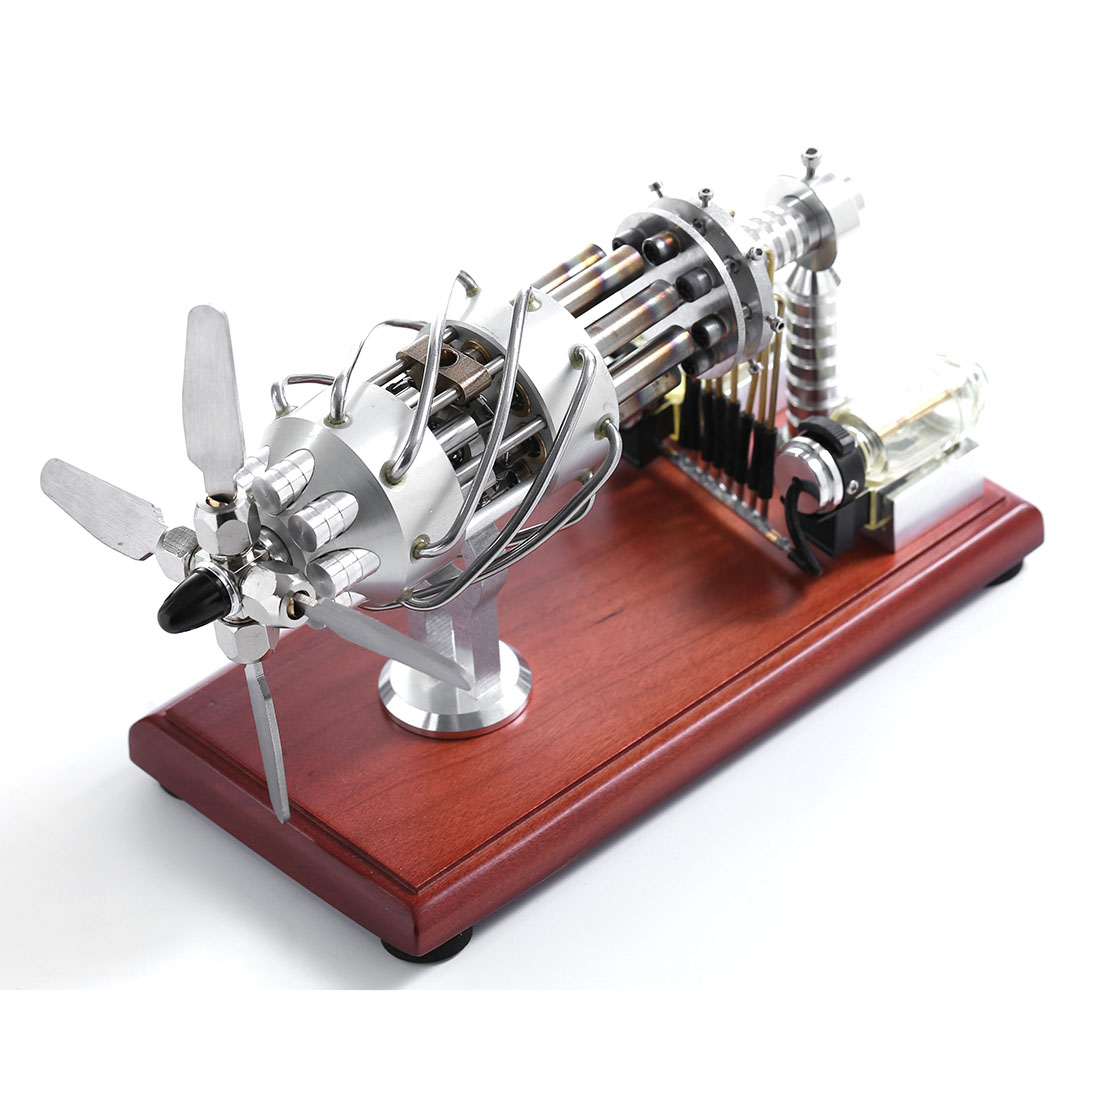 Surwish 16 Cylinders Swash Plate Hot-Air Stirling Engine Model DIY Scinece Remote For Boys Adult Gifts Valentines 2020 Silver